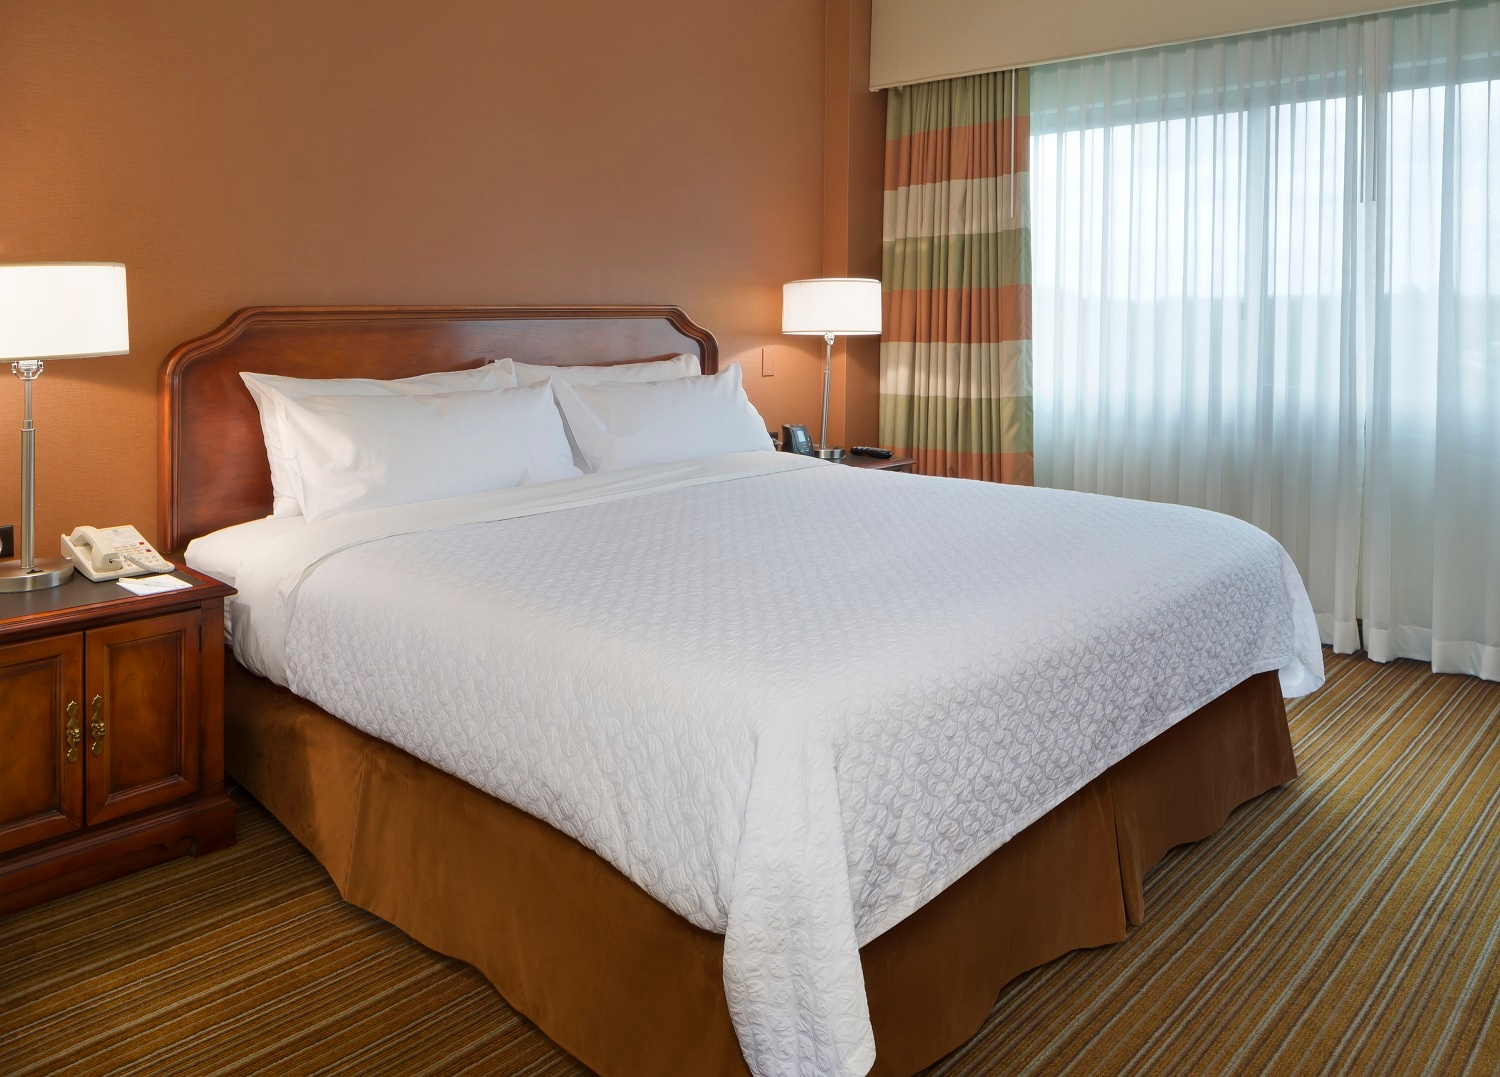 embassy suites by hilton parsippany coupons near me in. Black Bedroom Furniture Sets. Home Design Ideas